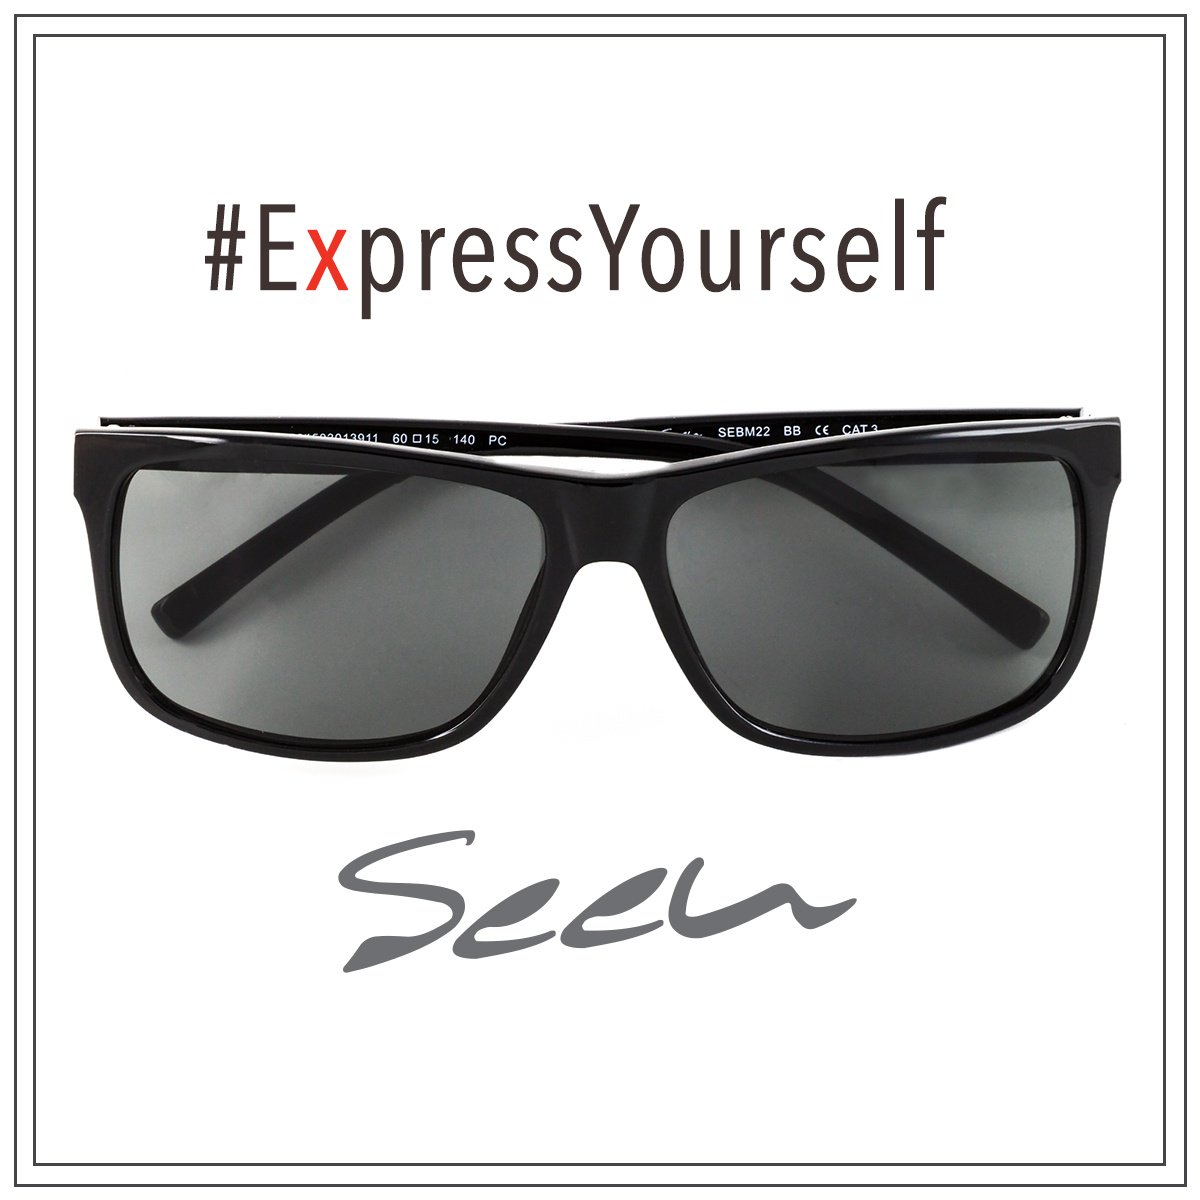 Follow @VisionExpress & RT for the chance to #Win these Men's sunglasses! How do you #ExpressYourself? https://t.co/N8o6Rkh9B3